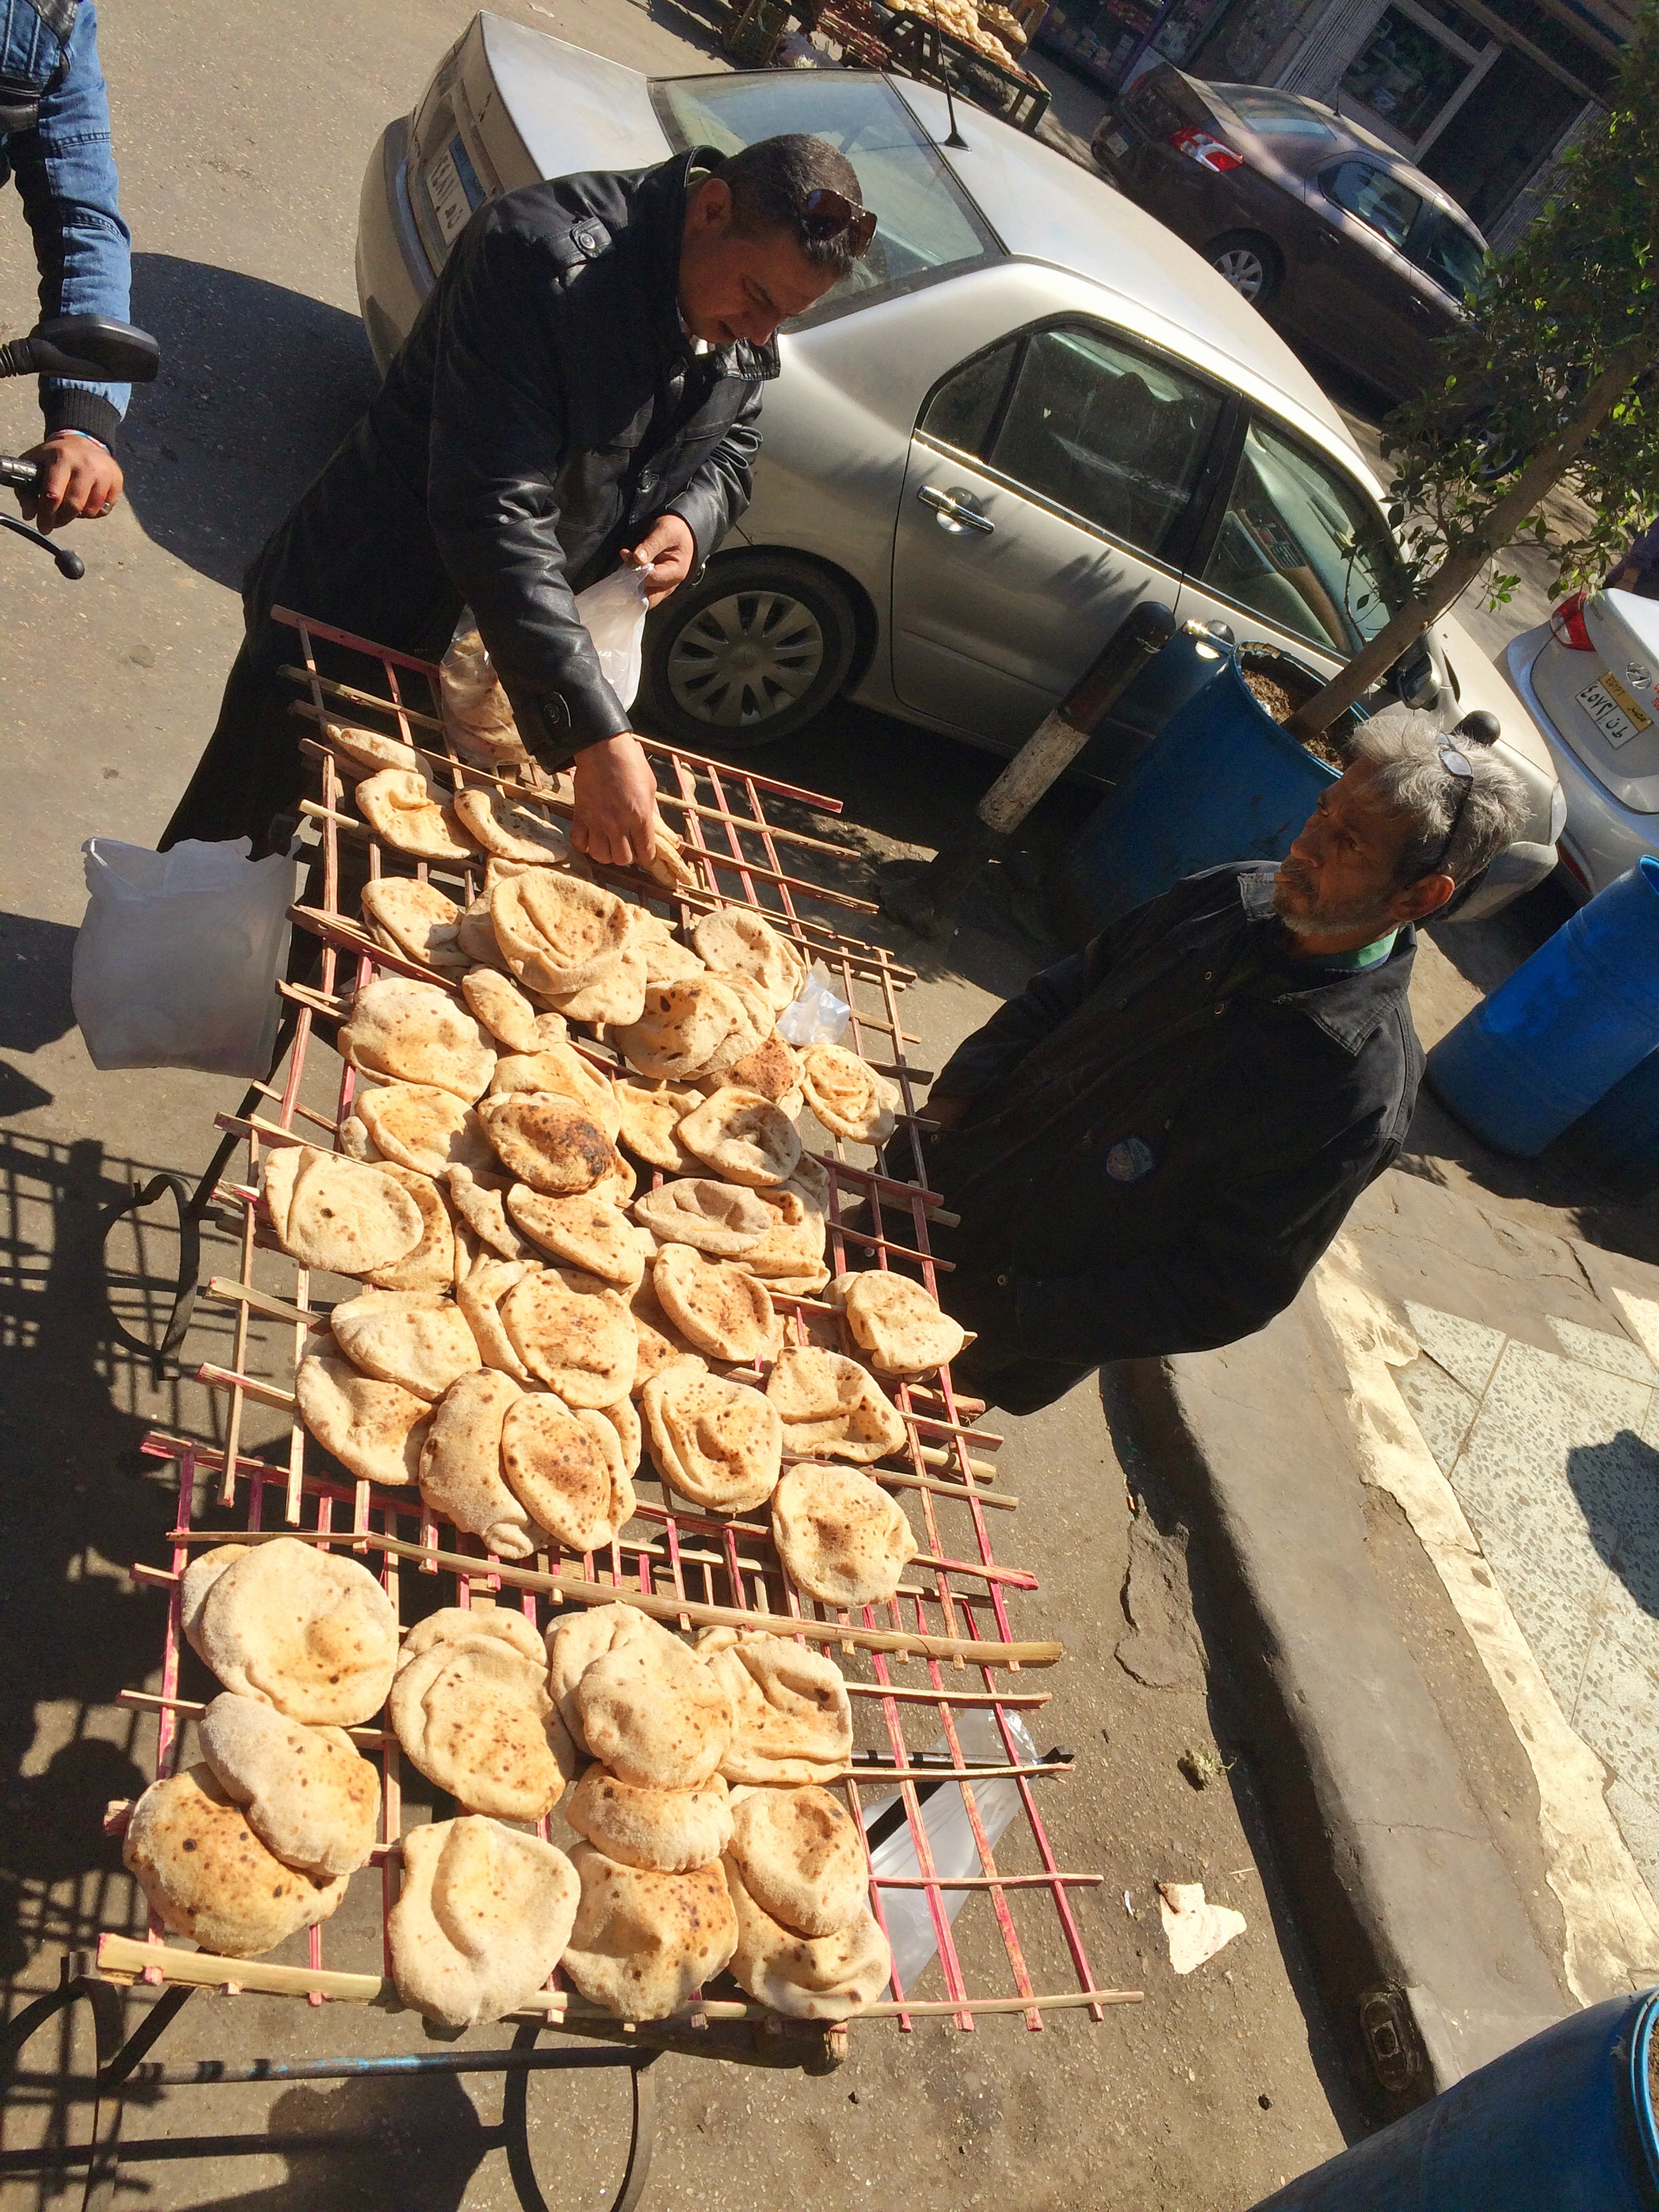 Buying pita bread outside Koshary Abou Tarek in Cairo